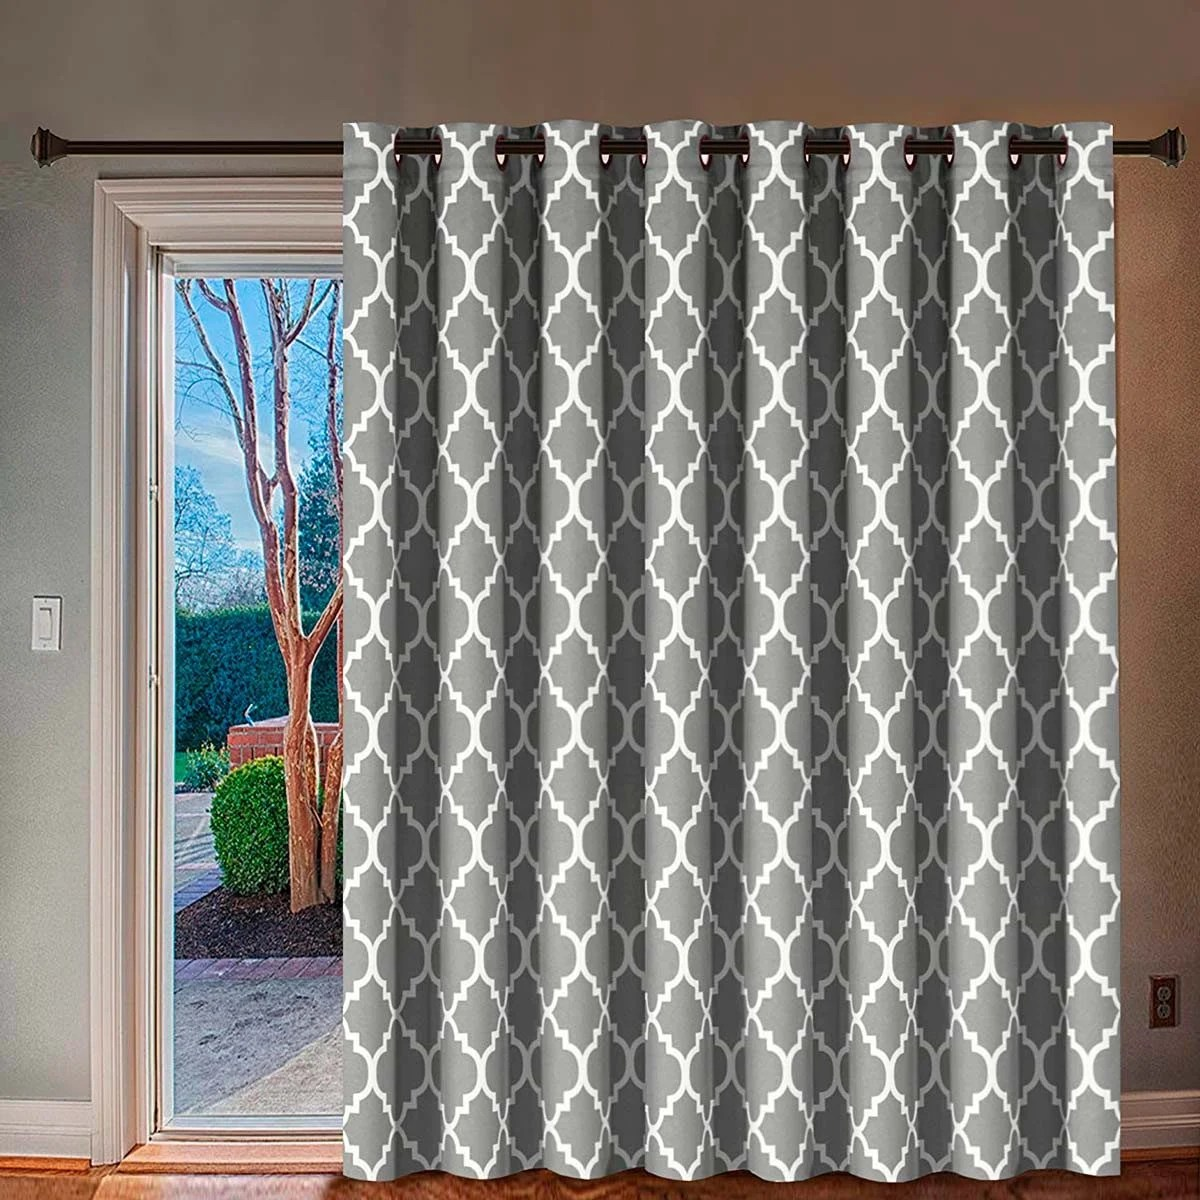 Sliding Door Curtain Patio Door Curtain Ideas For Different Needs And Tastes Family